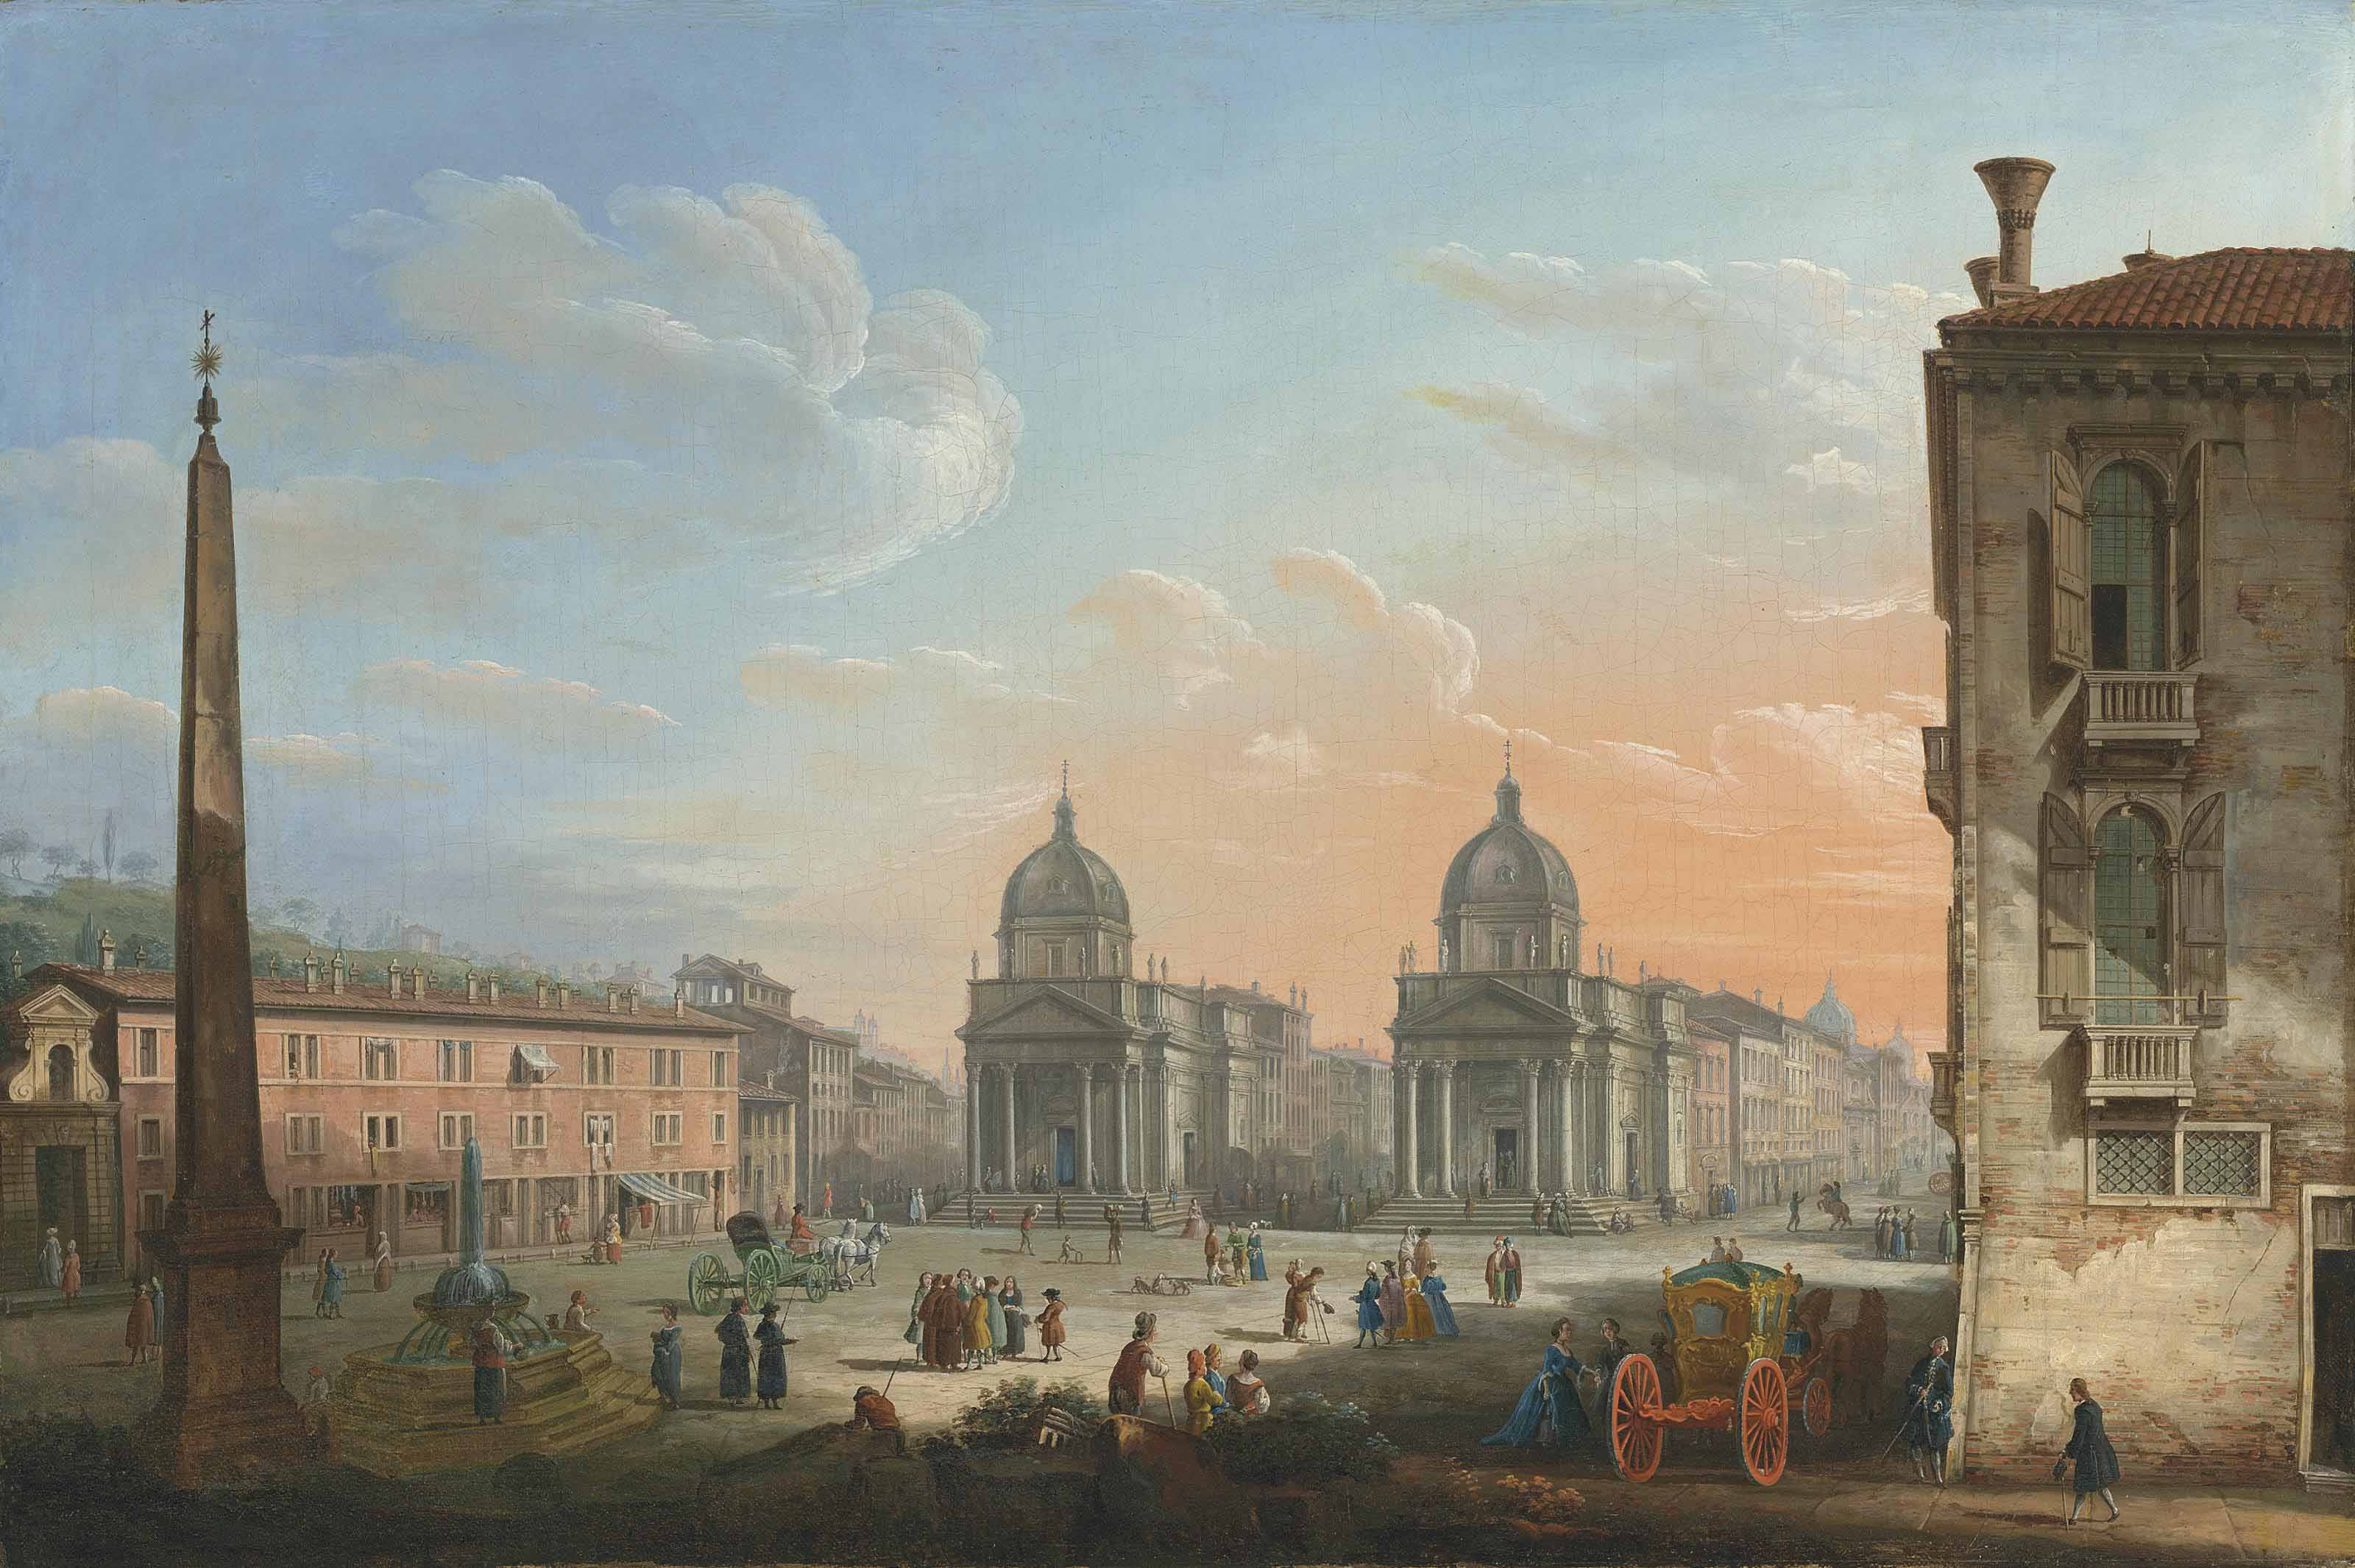 The Piazza del Popolo, Rome, looking towards the churches of Santa Maria di Montesanto and Santa Maria dei Miracoli